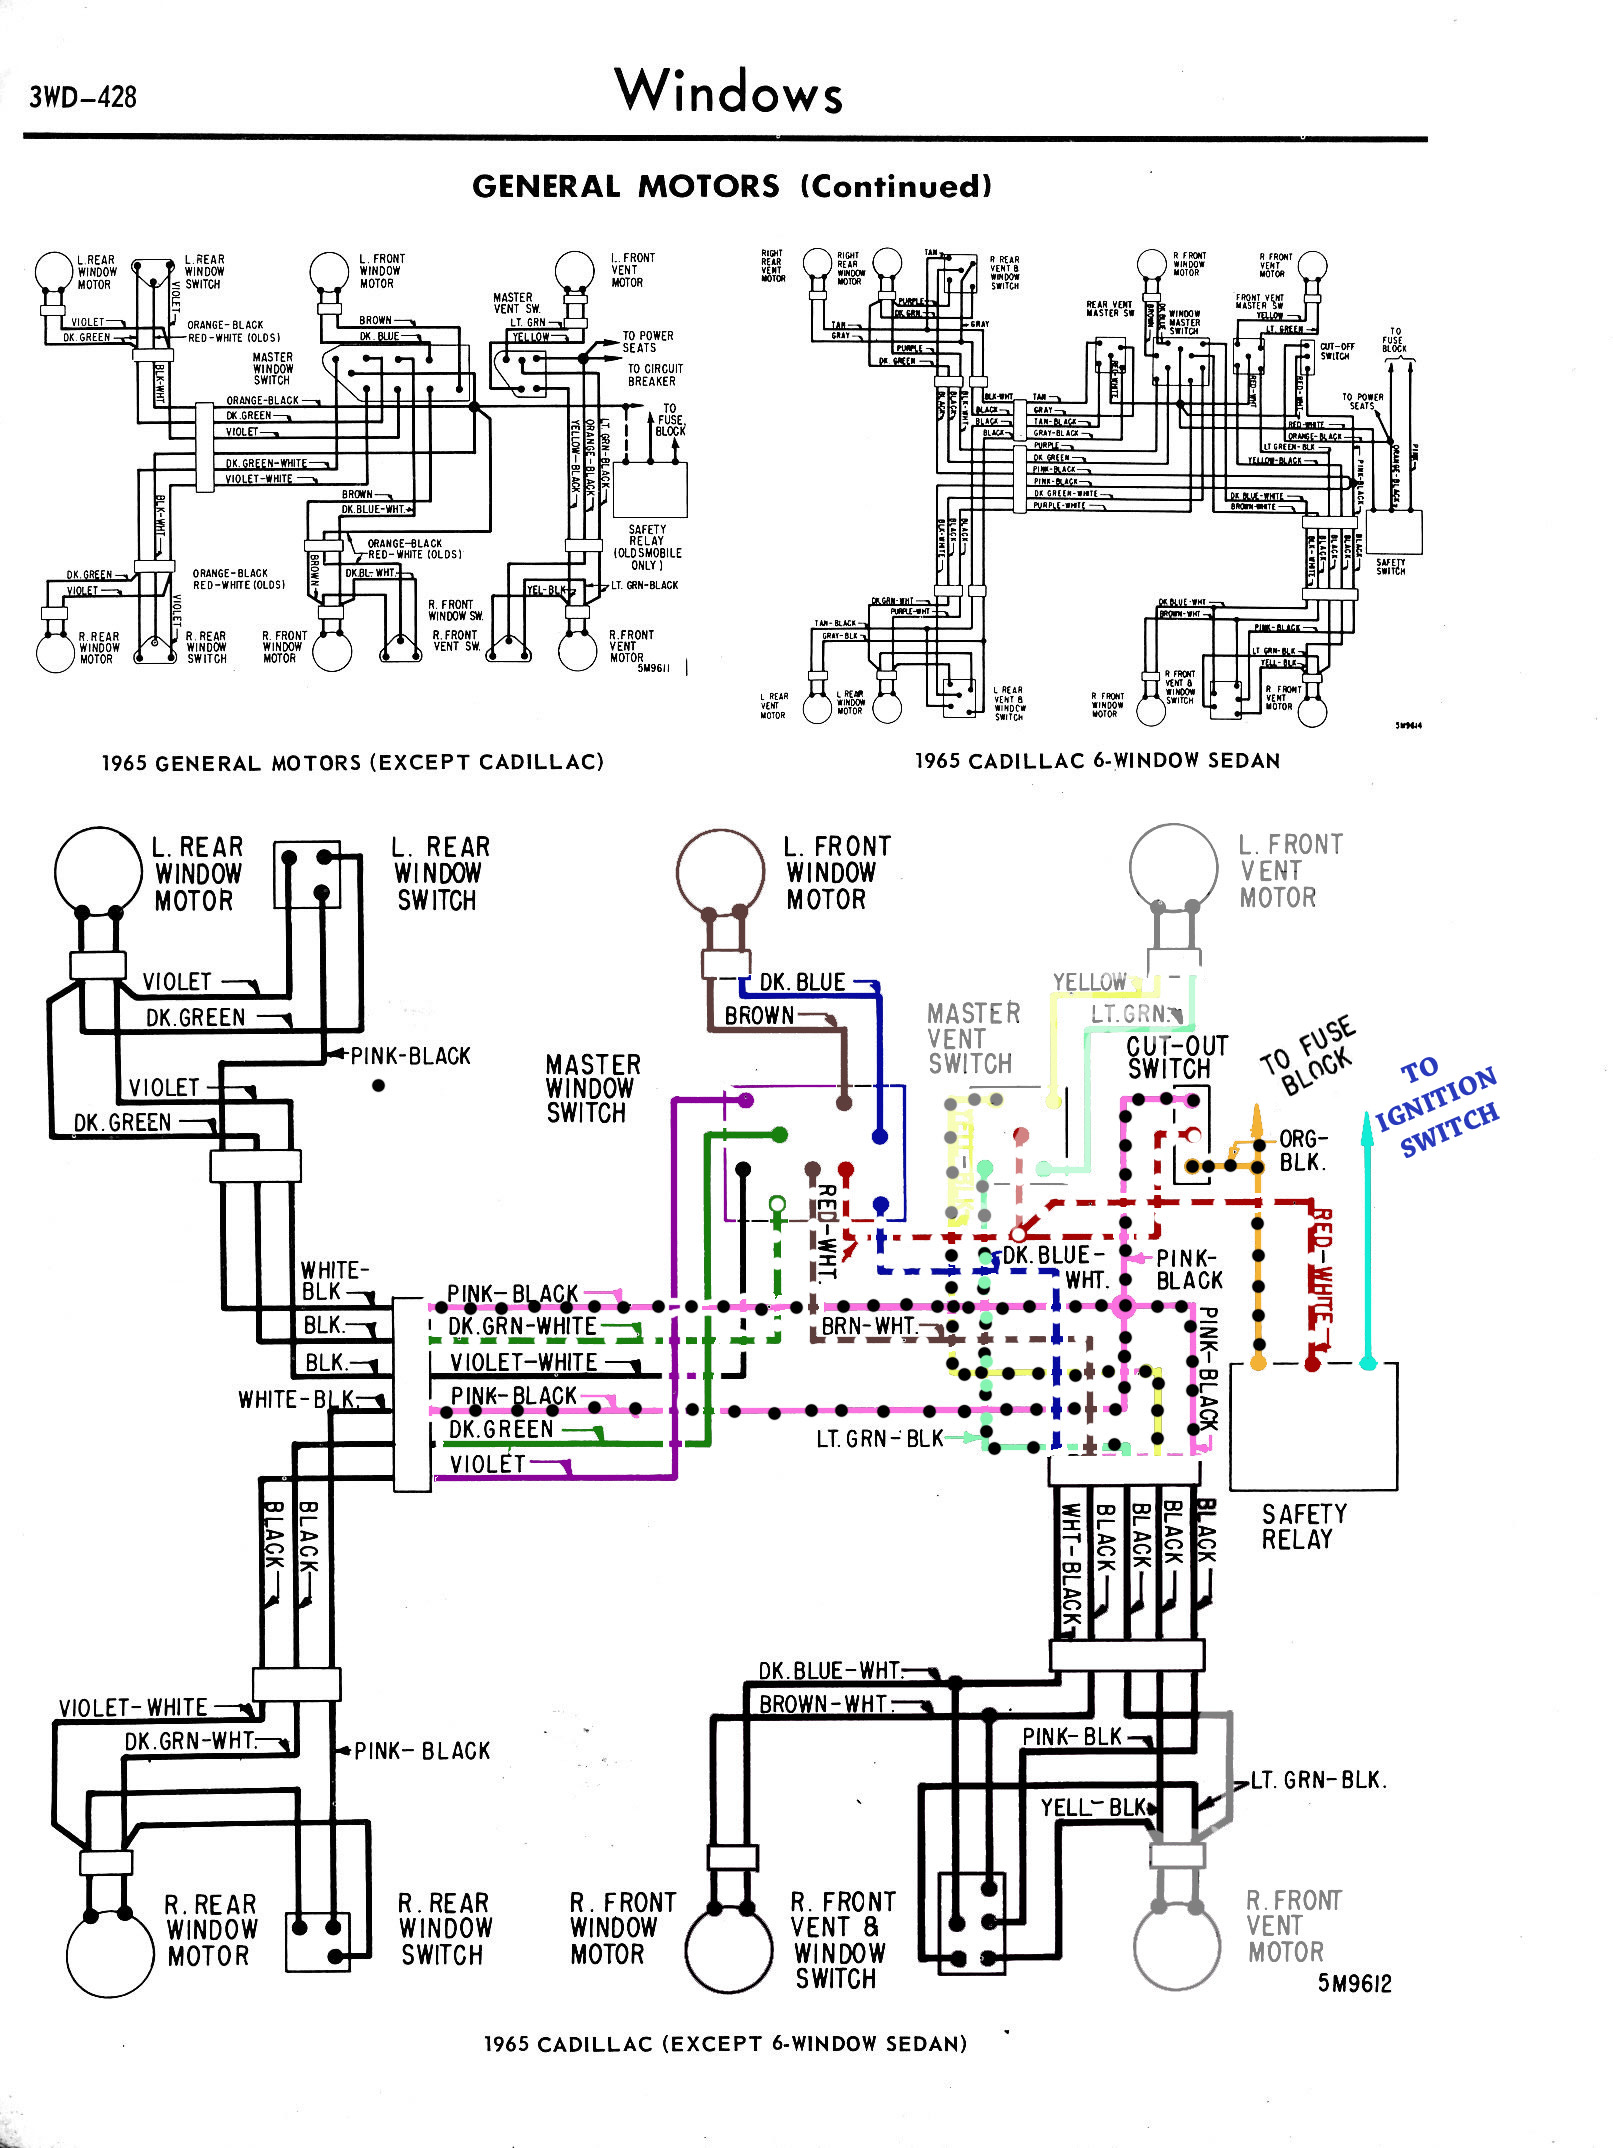 Chevy Diagrams on 1970 chevelle shifter diagram, 1970 chevelle under hood wiring harness diagram, 1970 chevelle fuse block diagram,